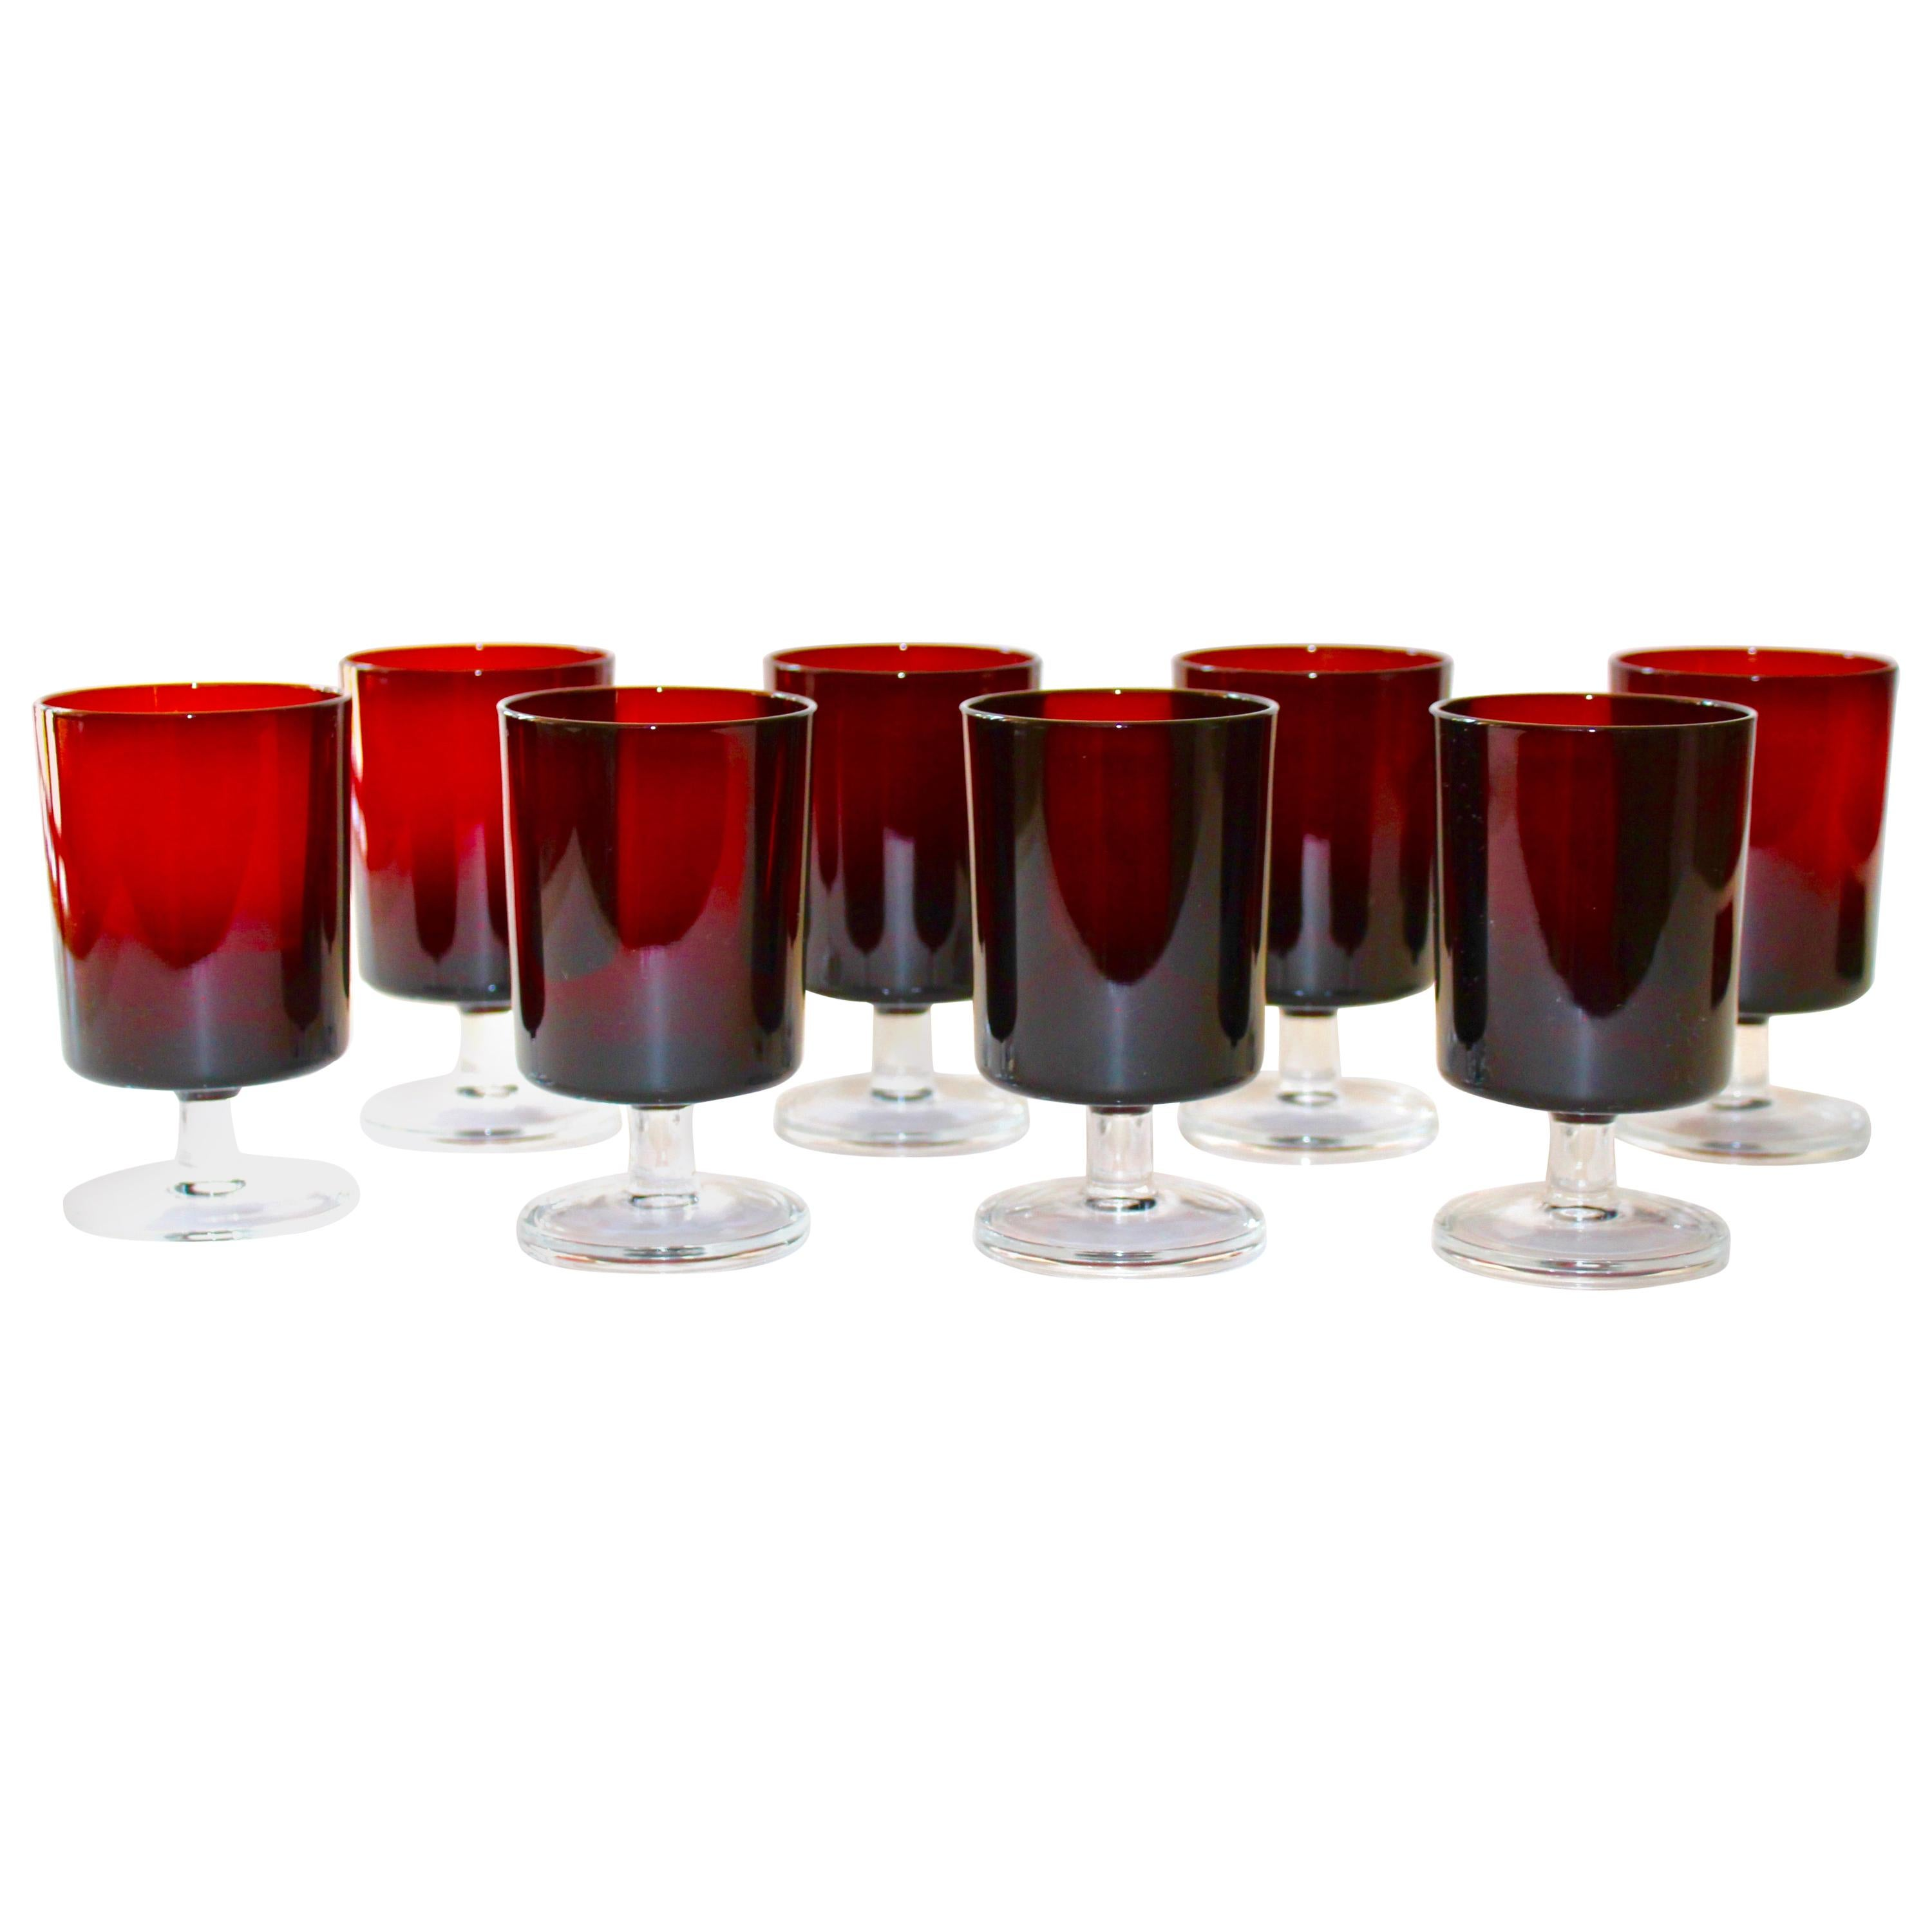 Set of 8 Mid-Century Modern Wine Glasses in Red, 1960s